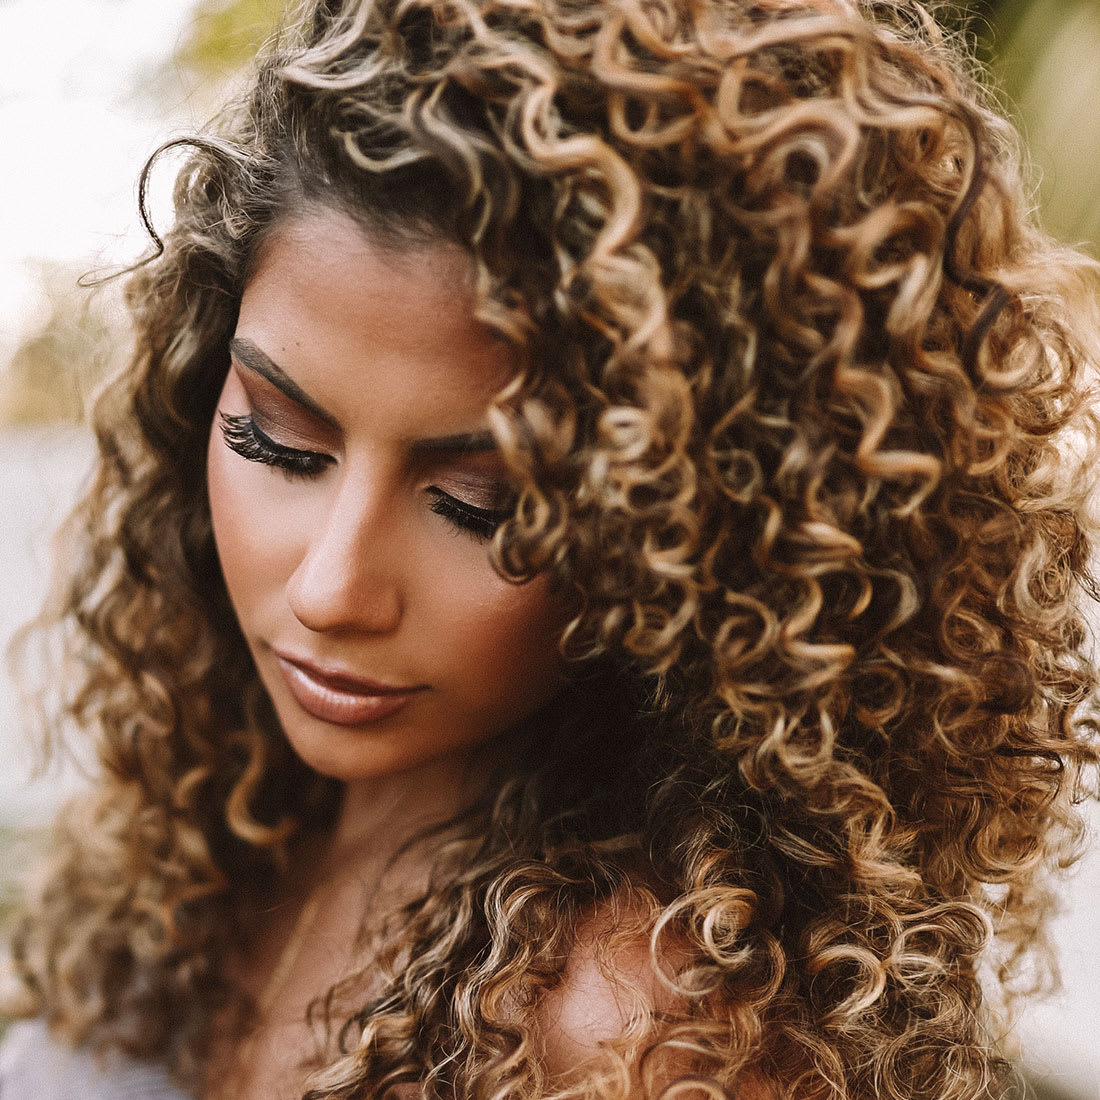 woman with highlighted blonde curls